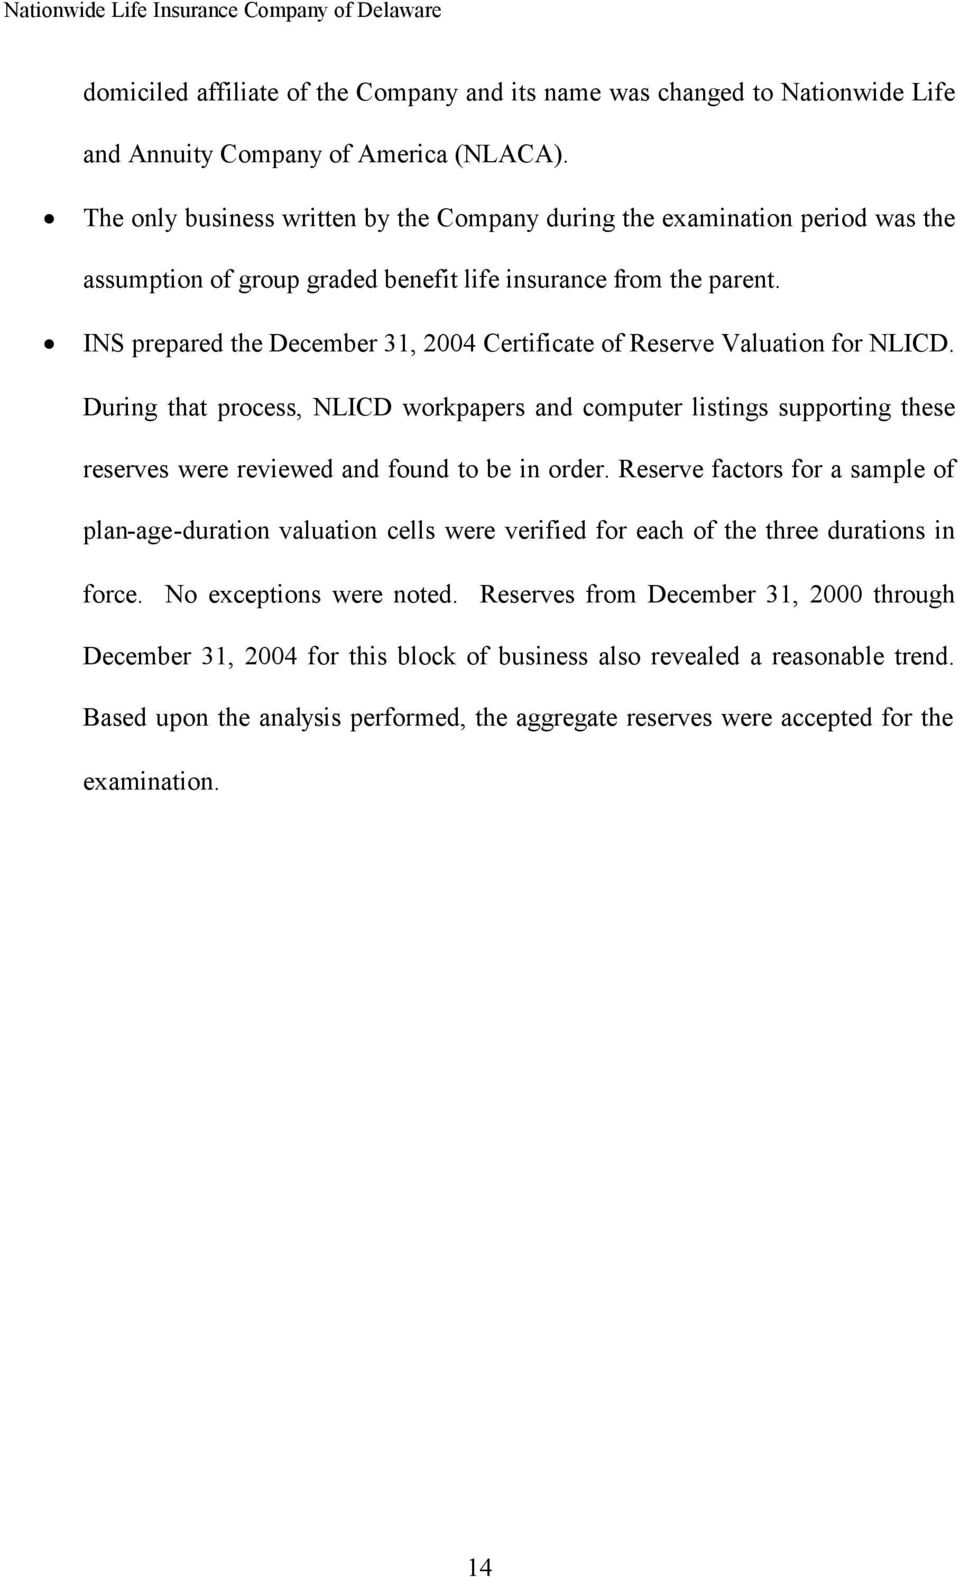 INS prepared the December 31, 2004 Certificate of Reserve Valuation for NLICD.